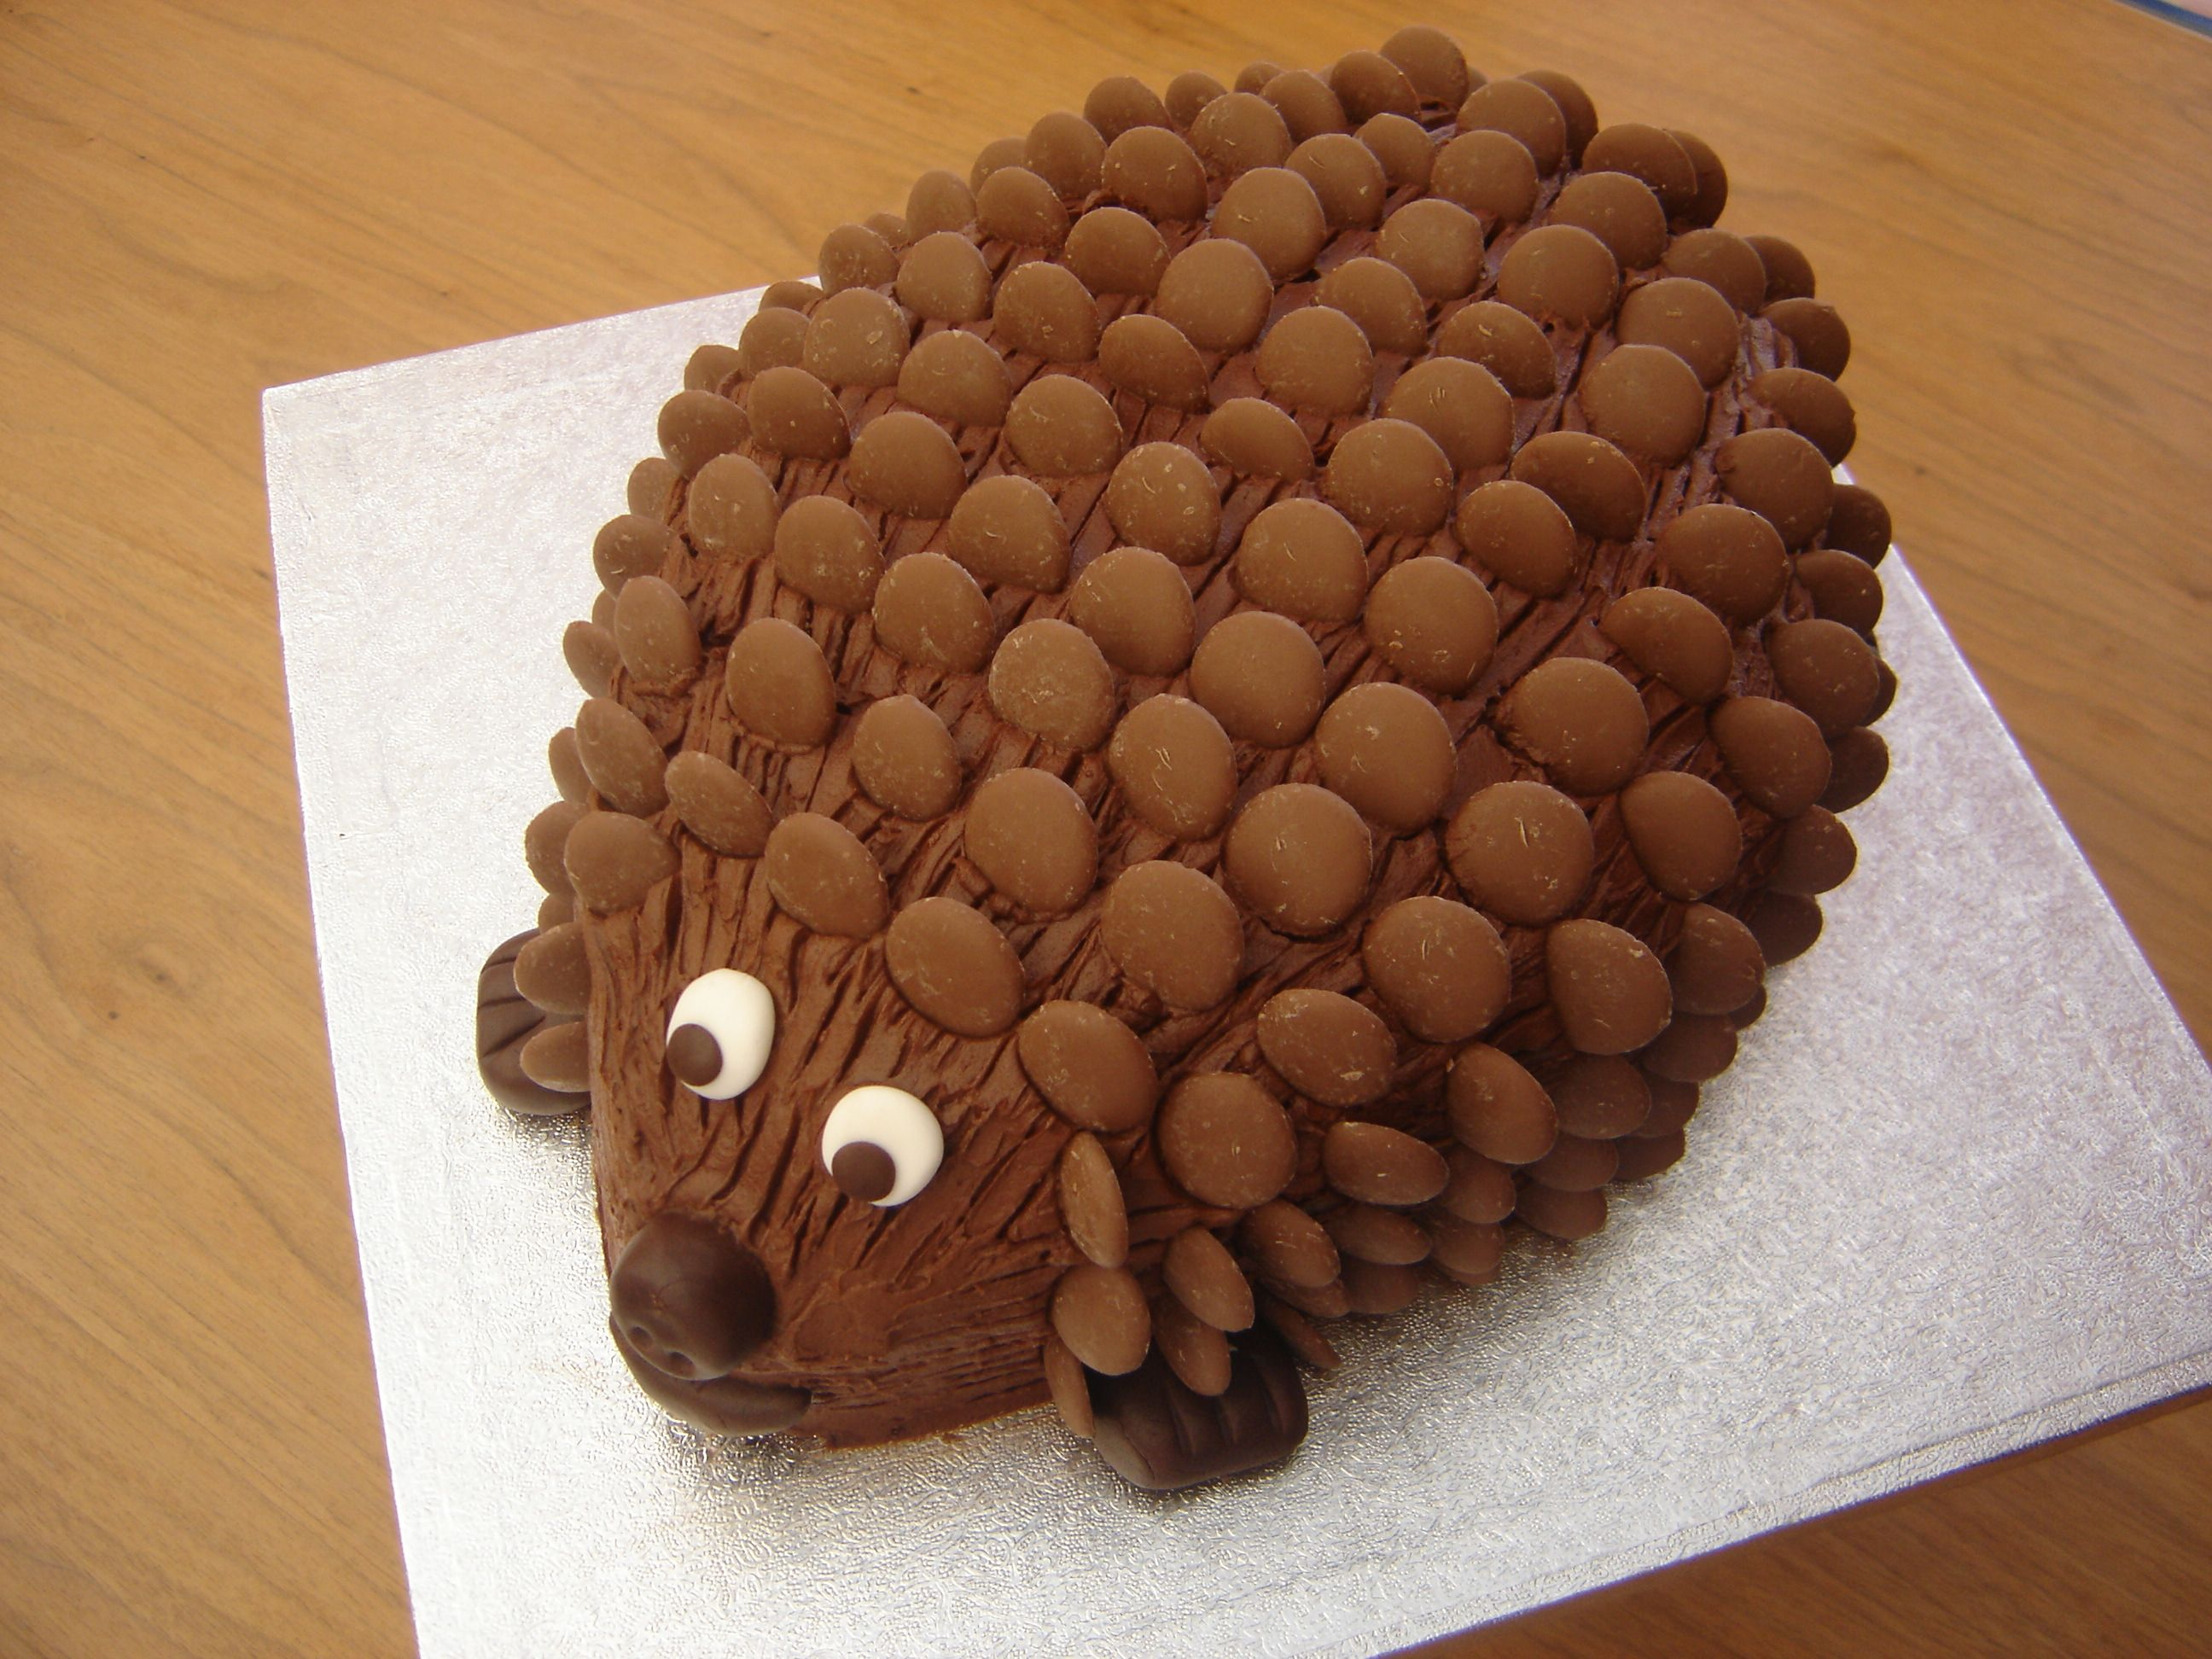 Hedgehog Cake Omg I Know Someone Who Would Love This